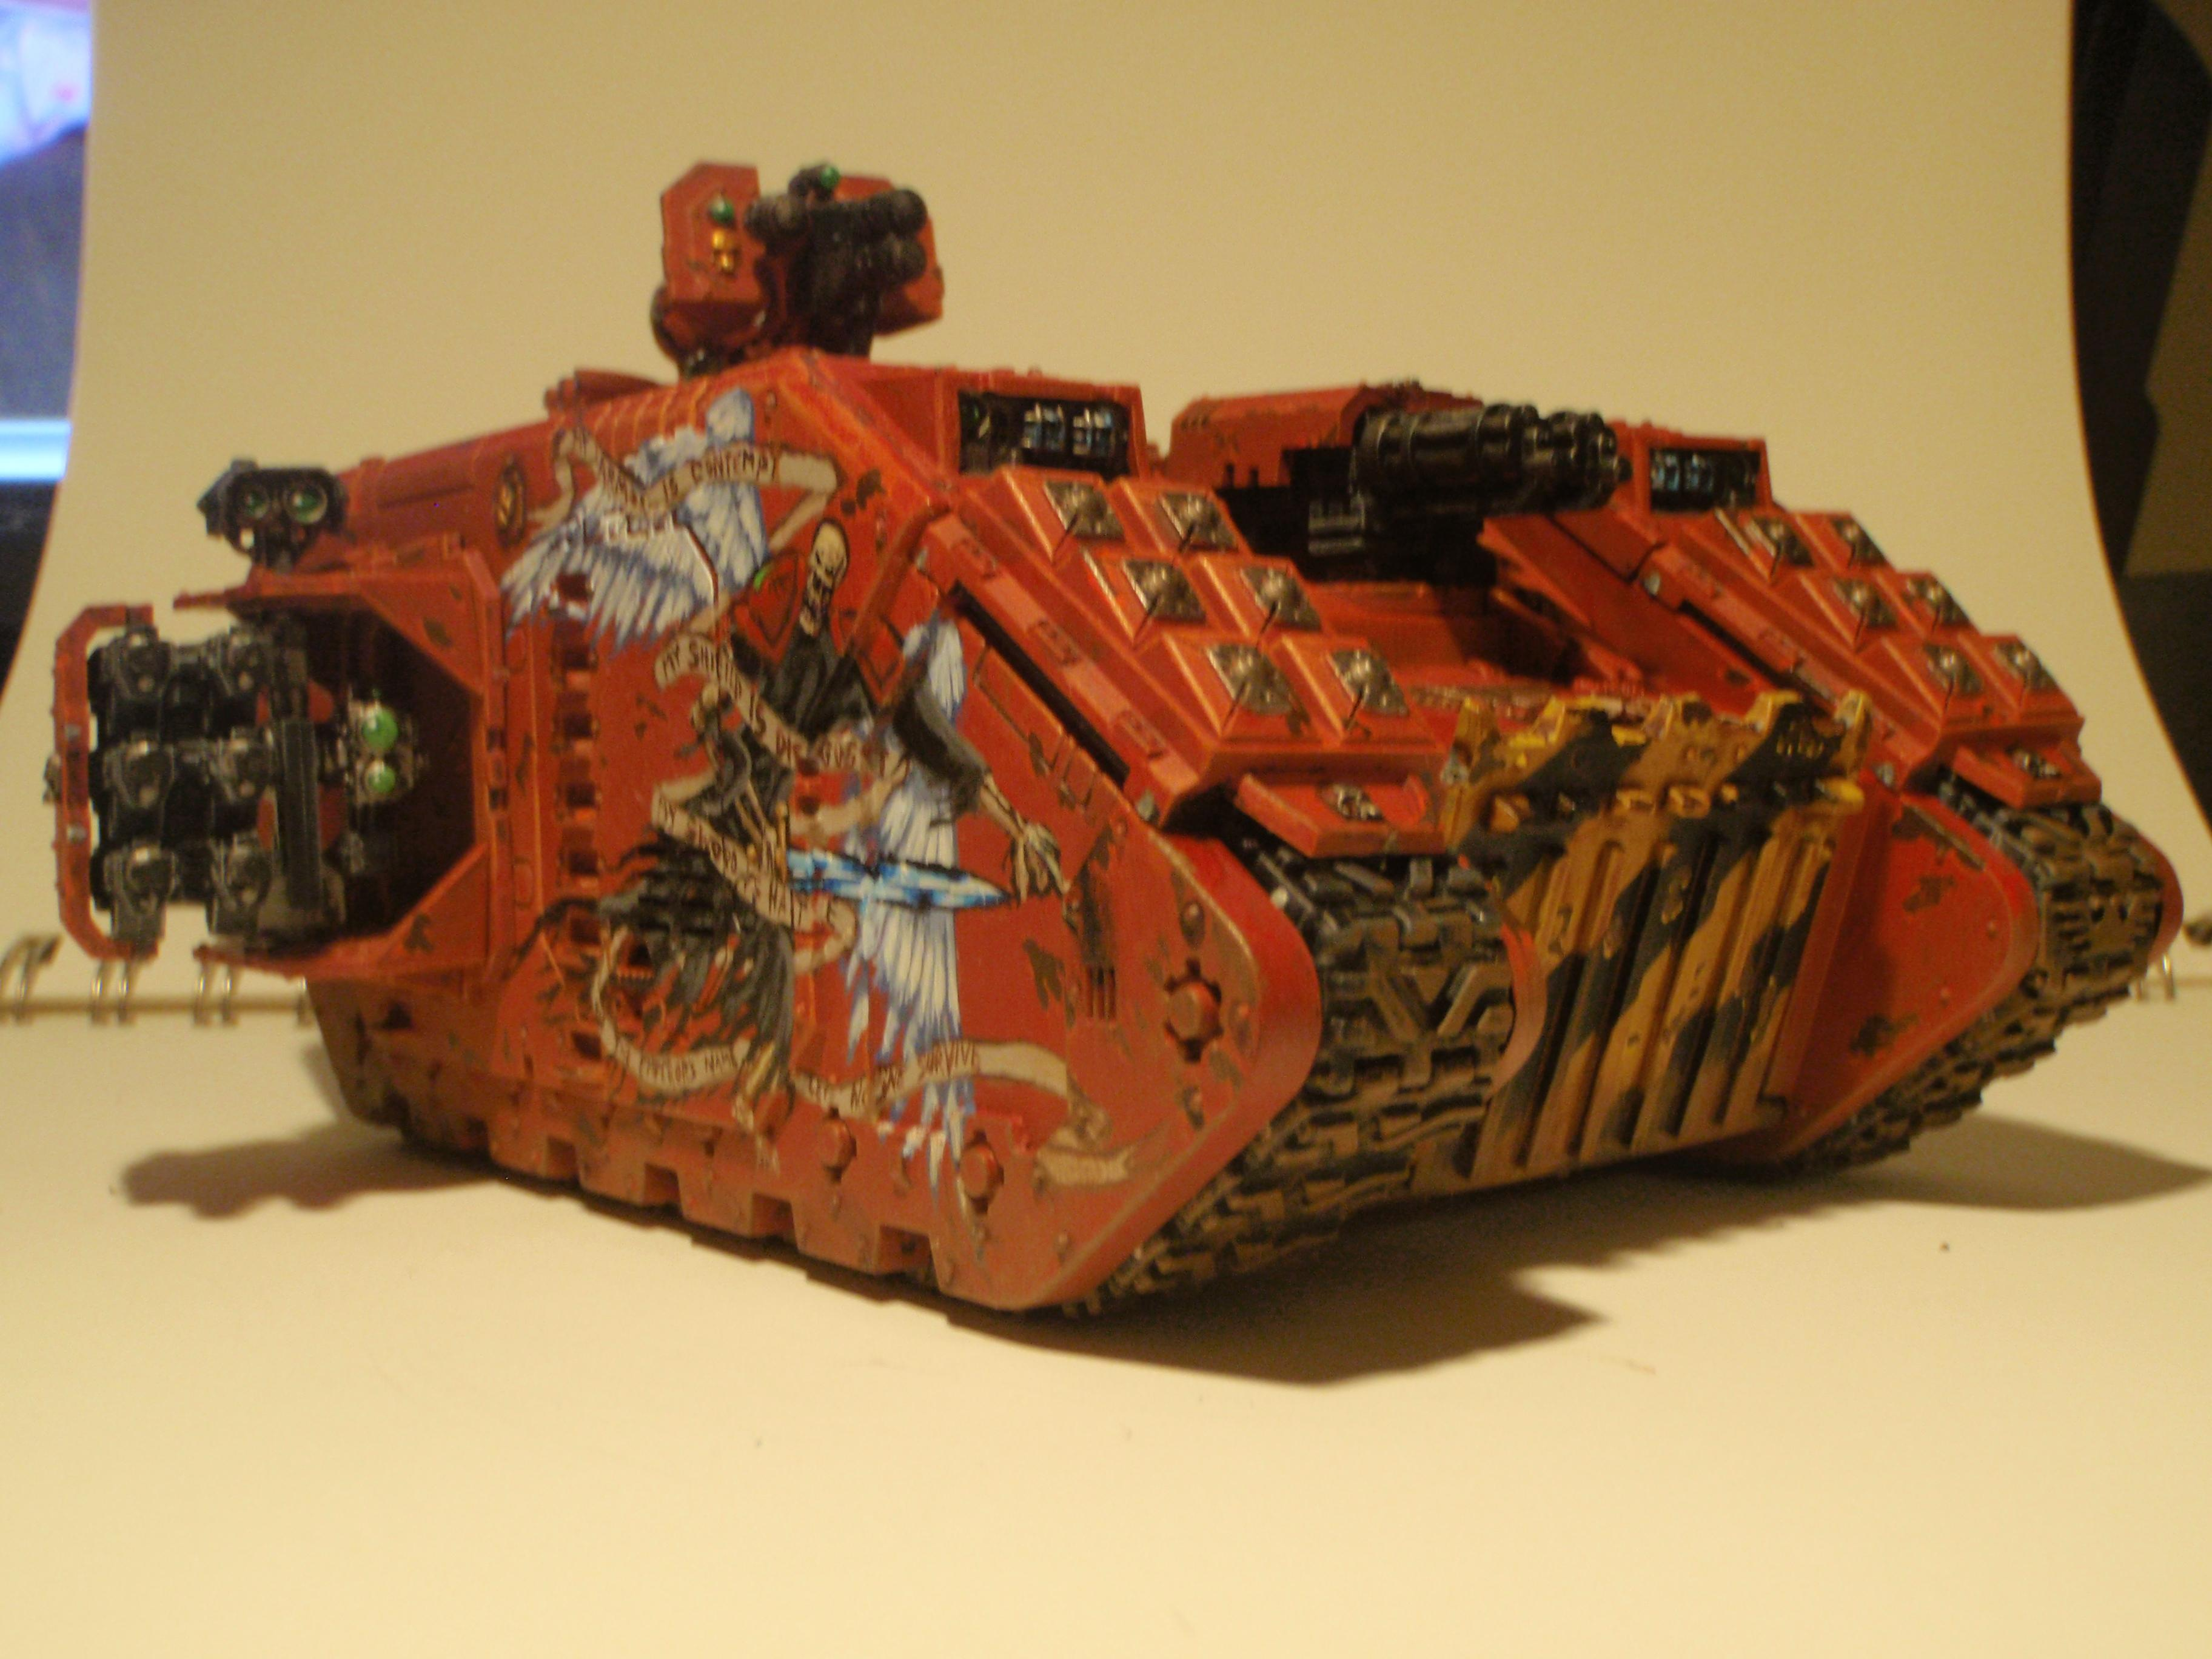 Angel, Artwork, Blood, Blood Angels, Crusader, Death, Dreadnought, Freehand, Imperial, Land Raider, Red, Sanguinious, Space Marines, Tank